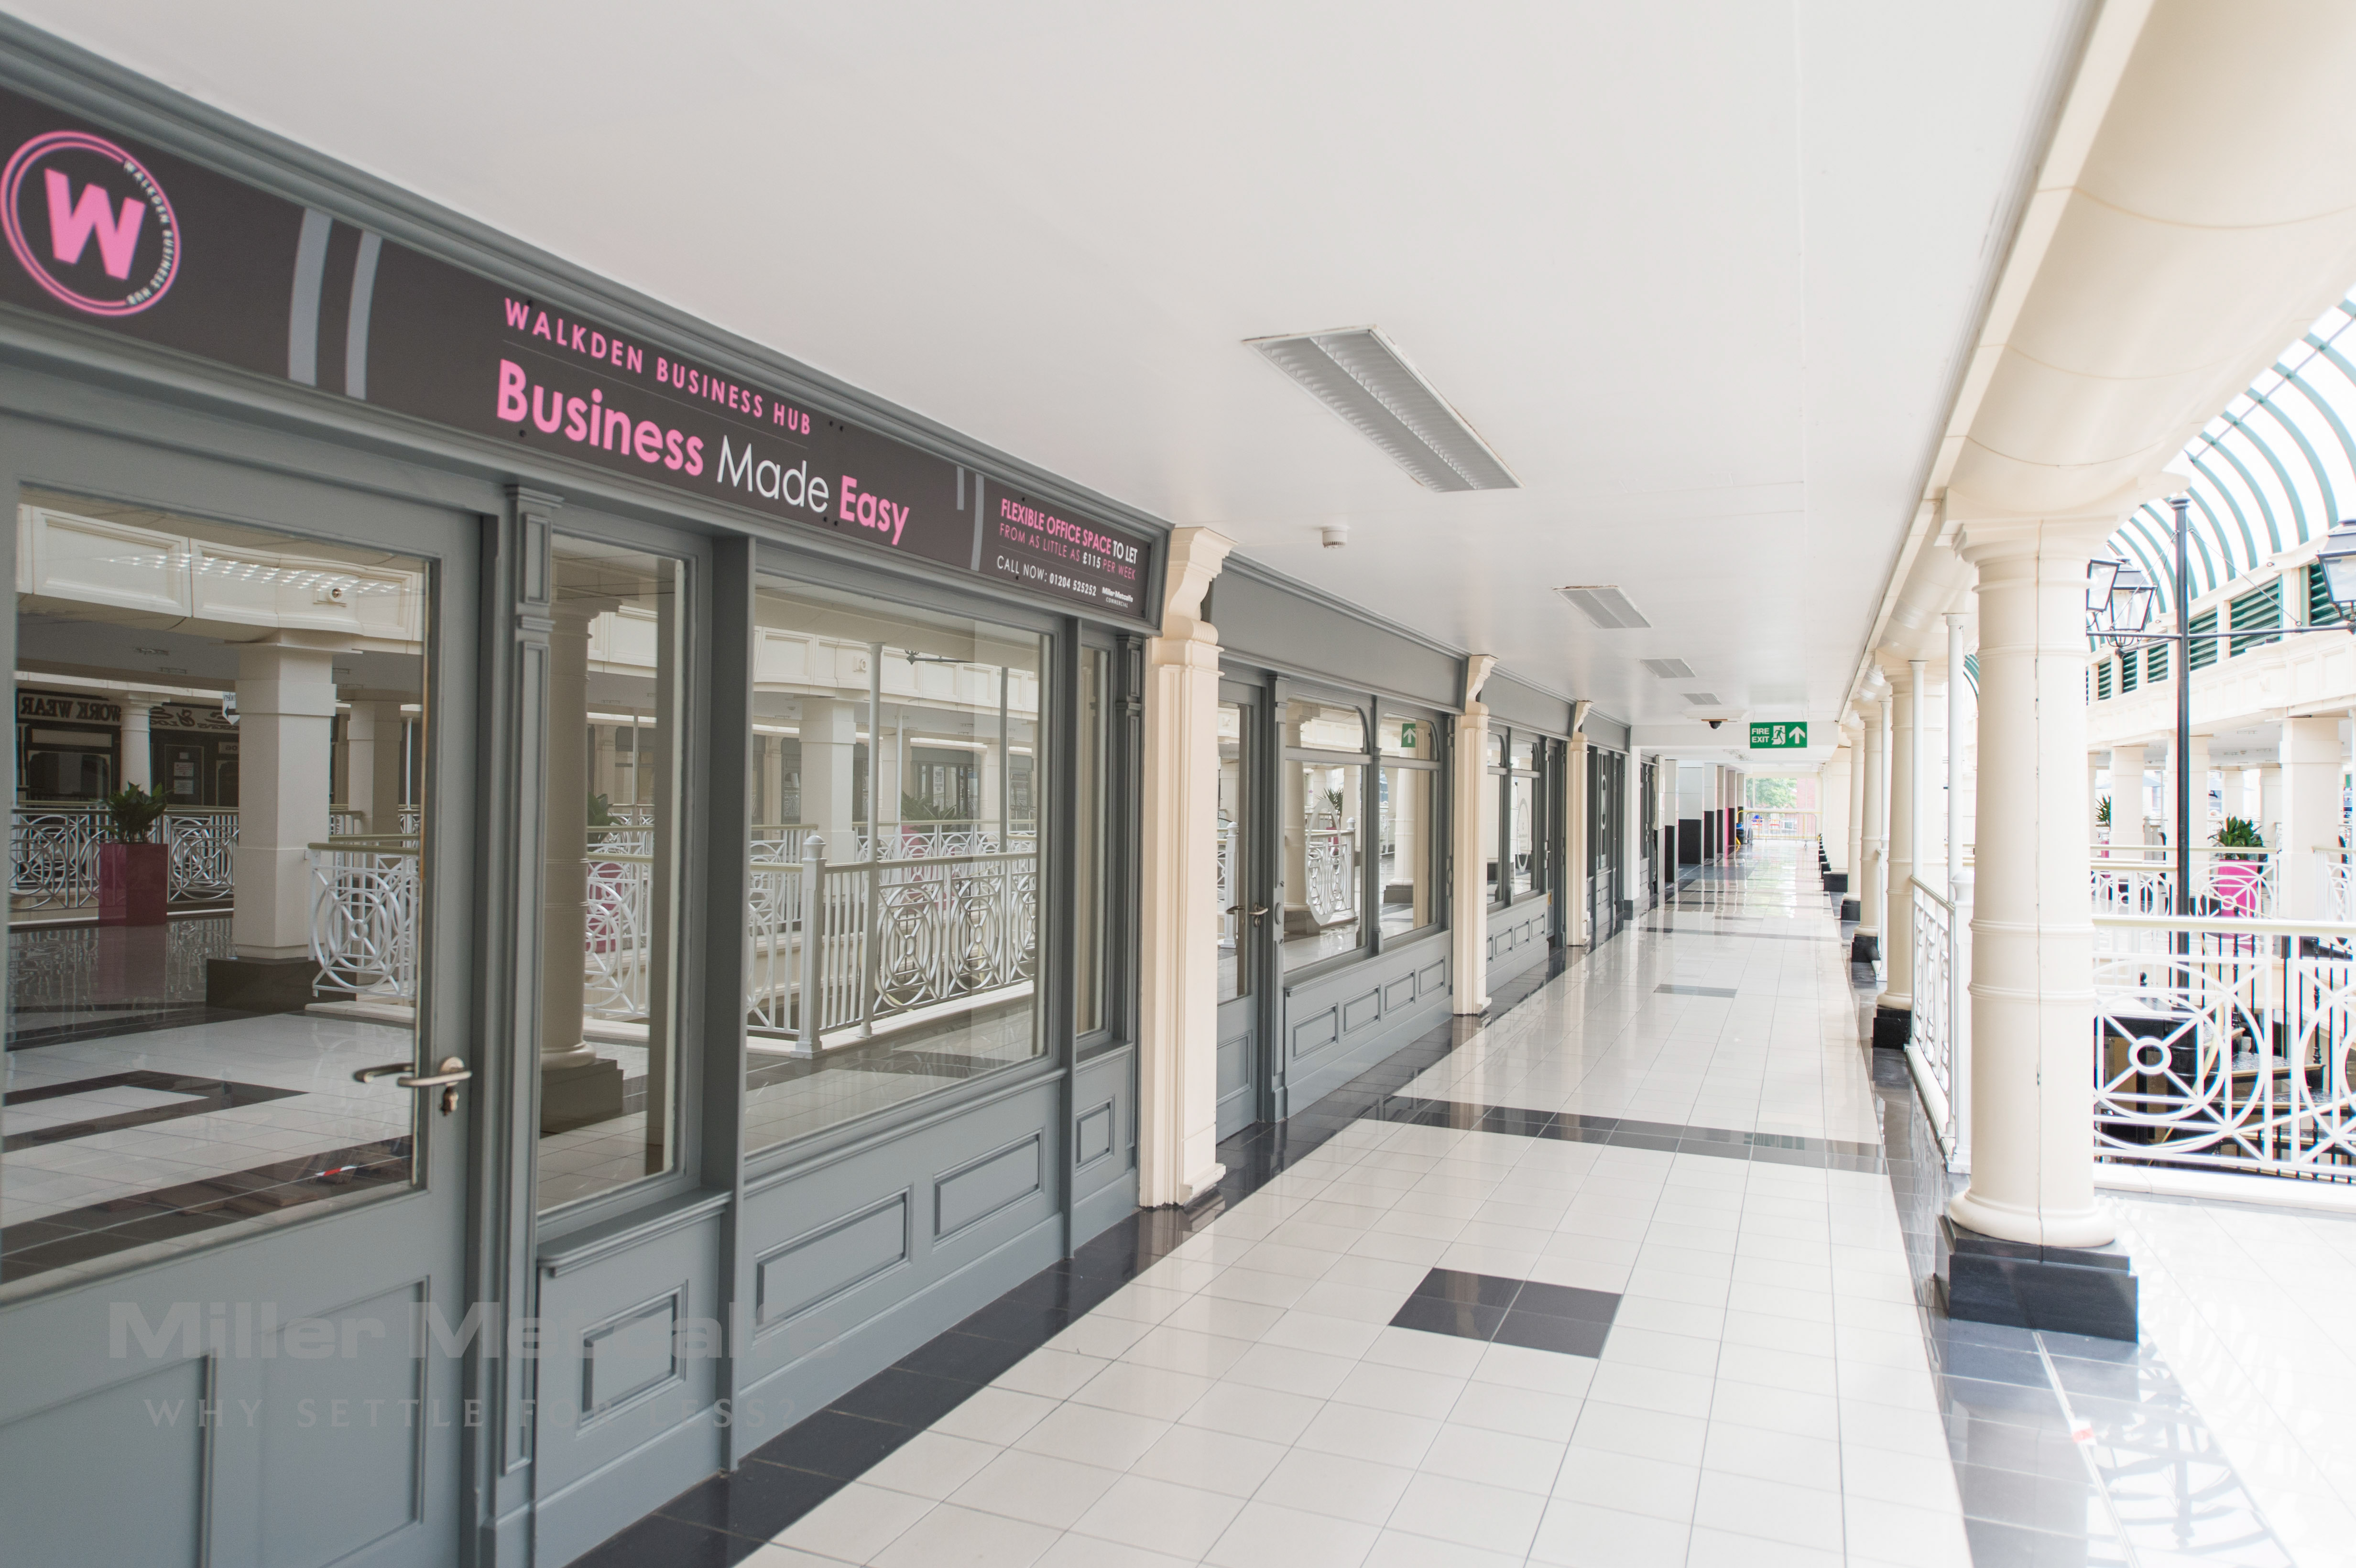 The Derwent Group's Walkden Business Hub Almost Fully Let